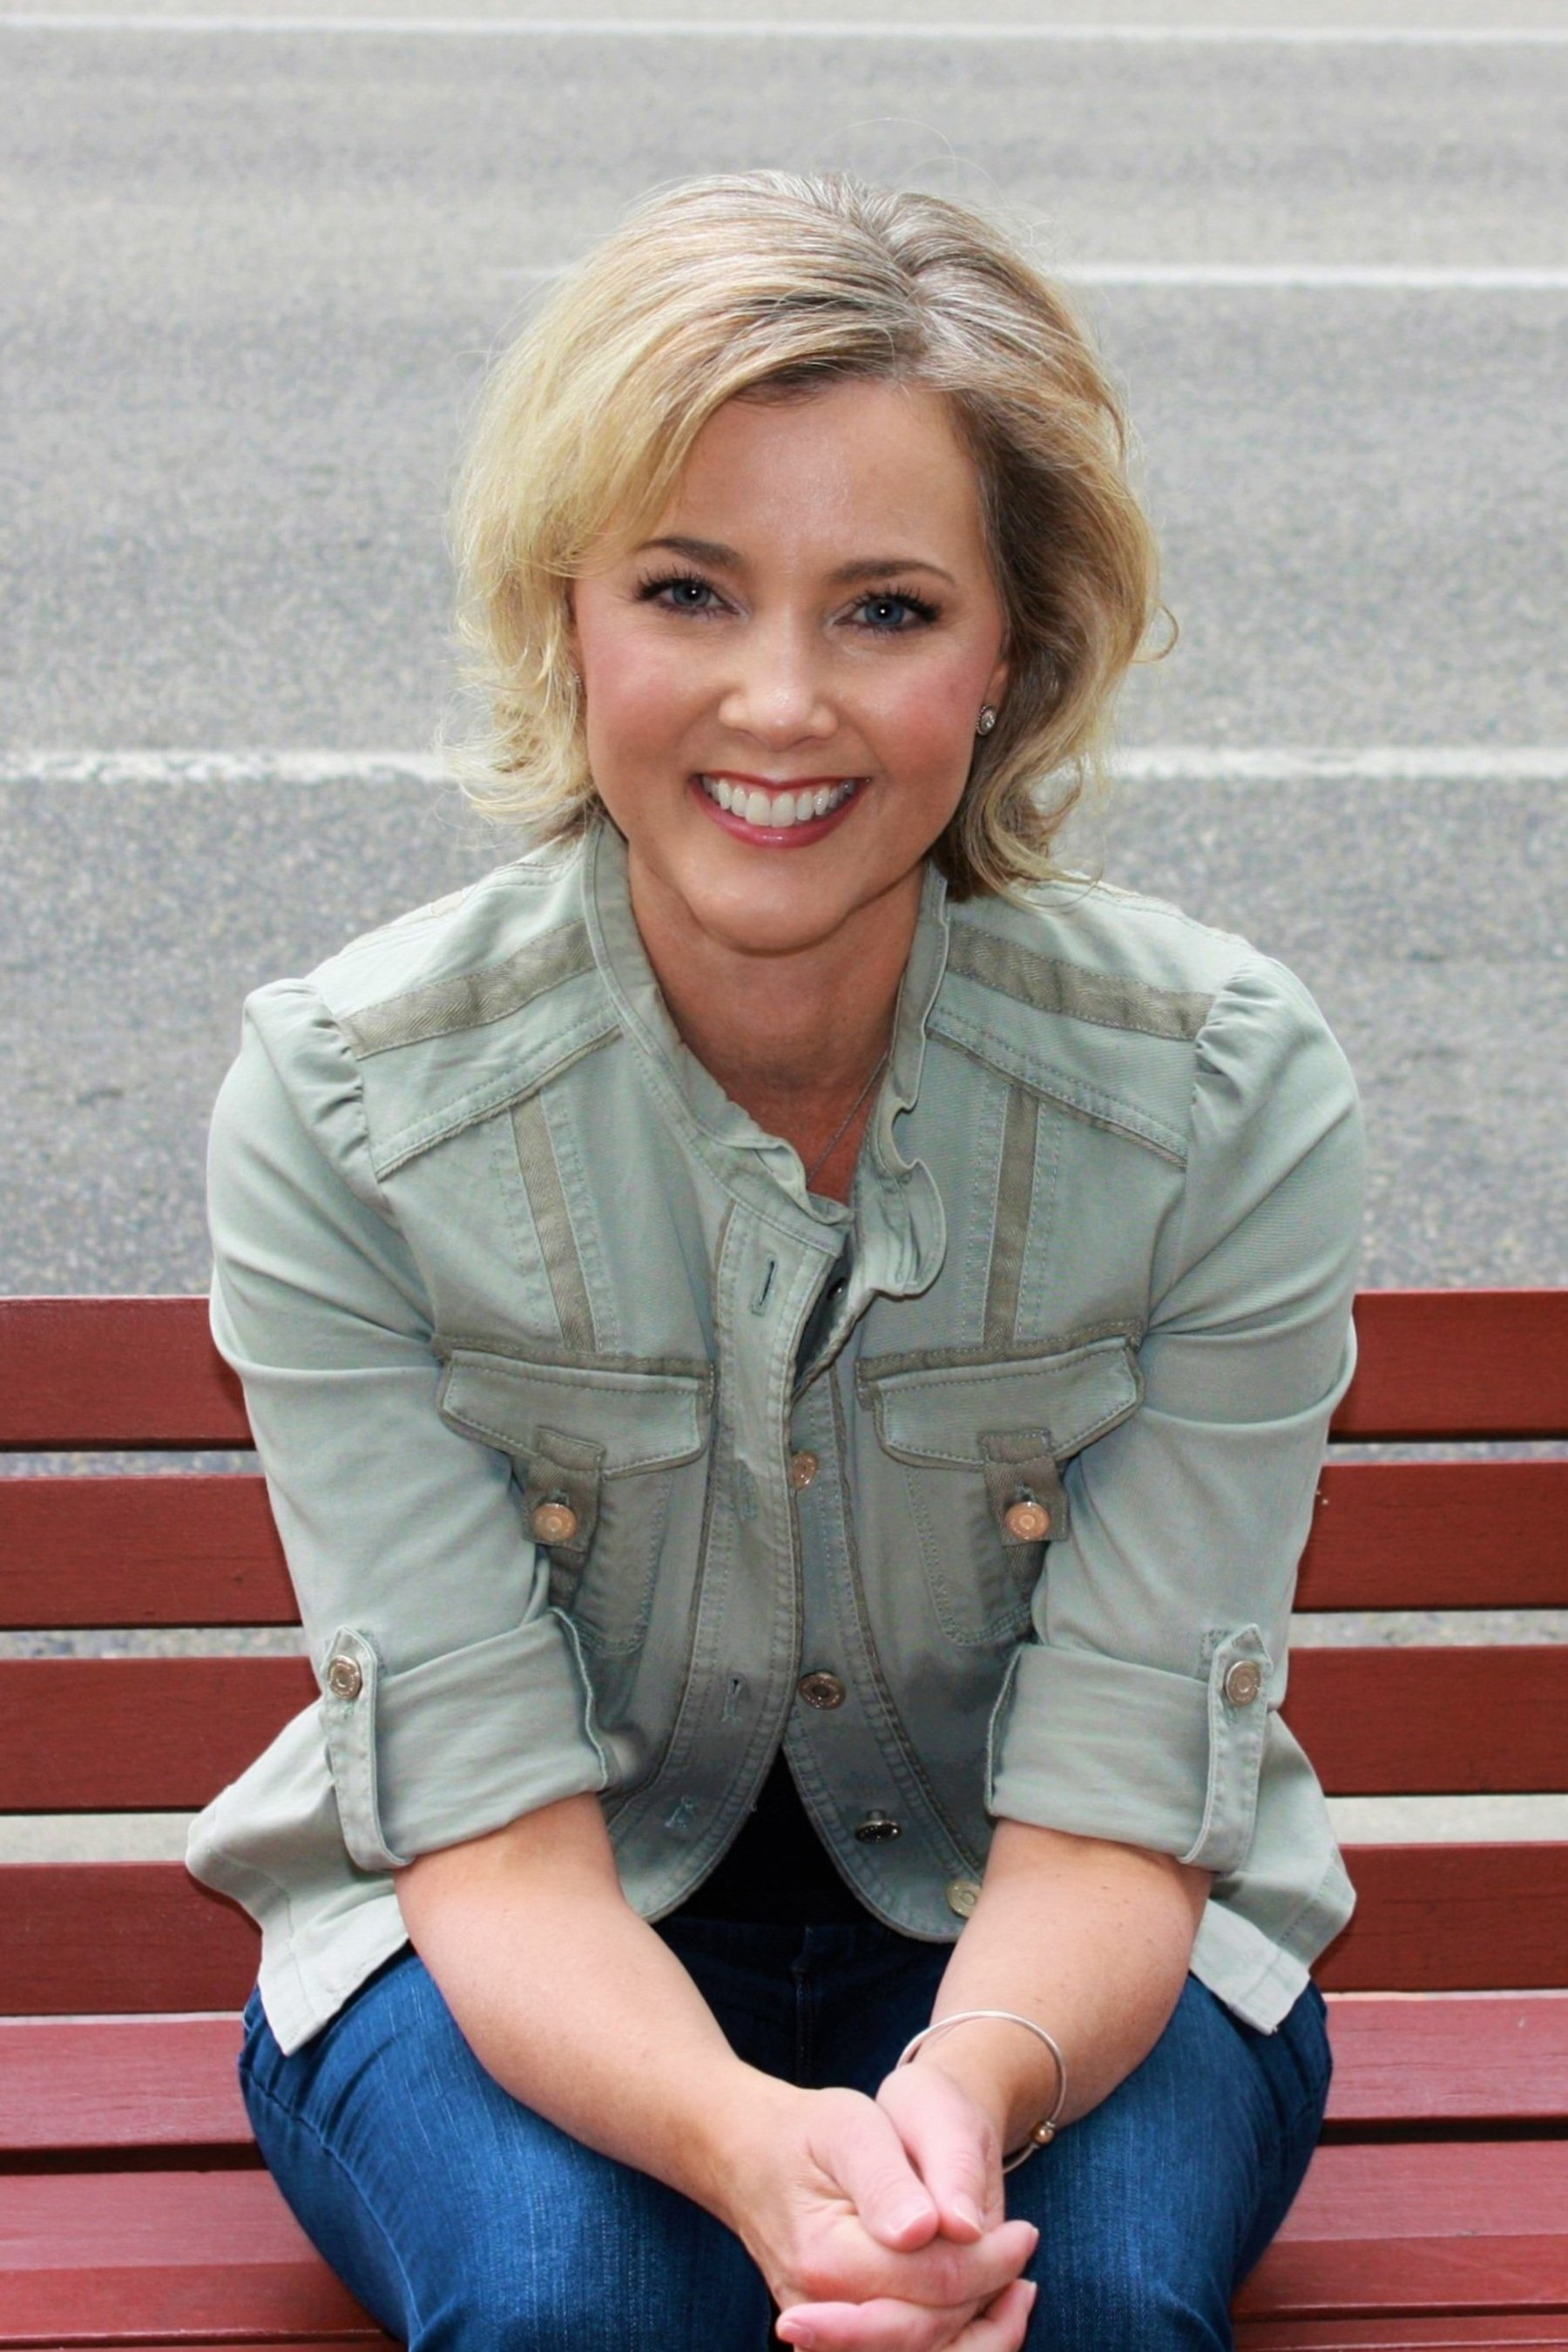 Allison Dunn in a green button up on a red bench.